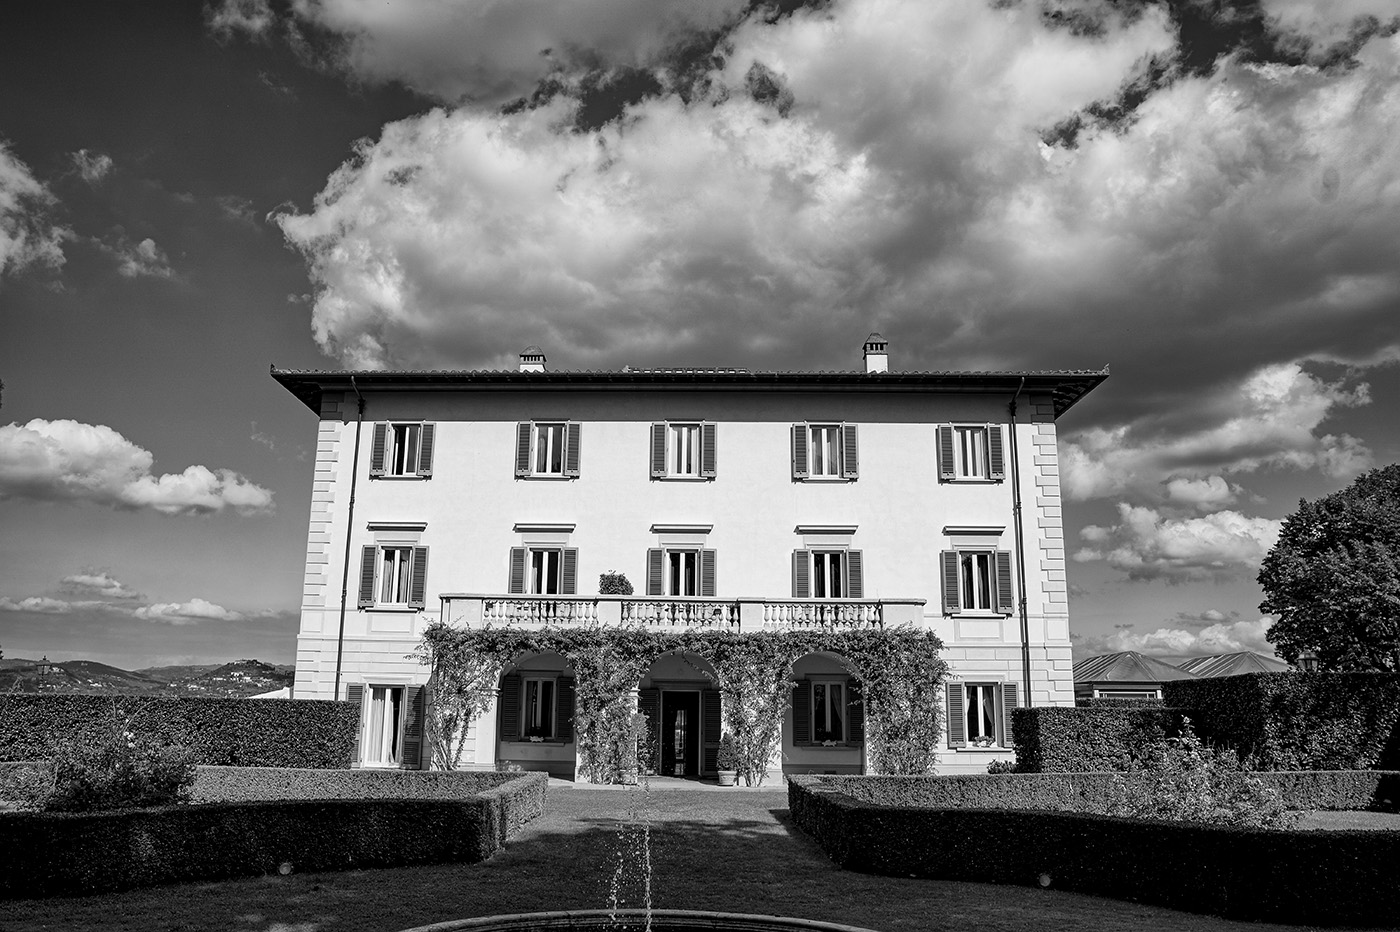 Duccio Argentini is a Professional Wedding Photographer in Florence - Photo Shoot on Autumn wedding at Villa la Vedetta